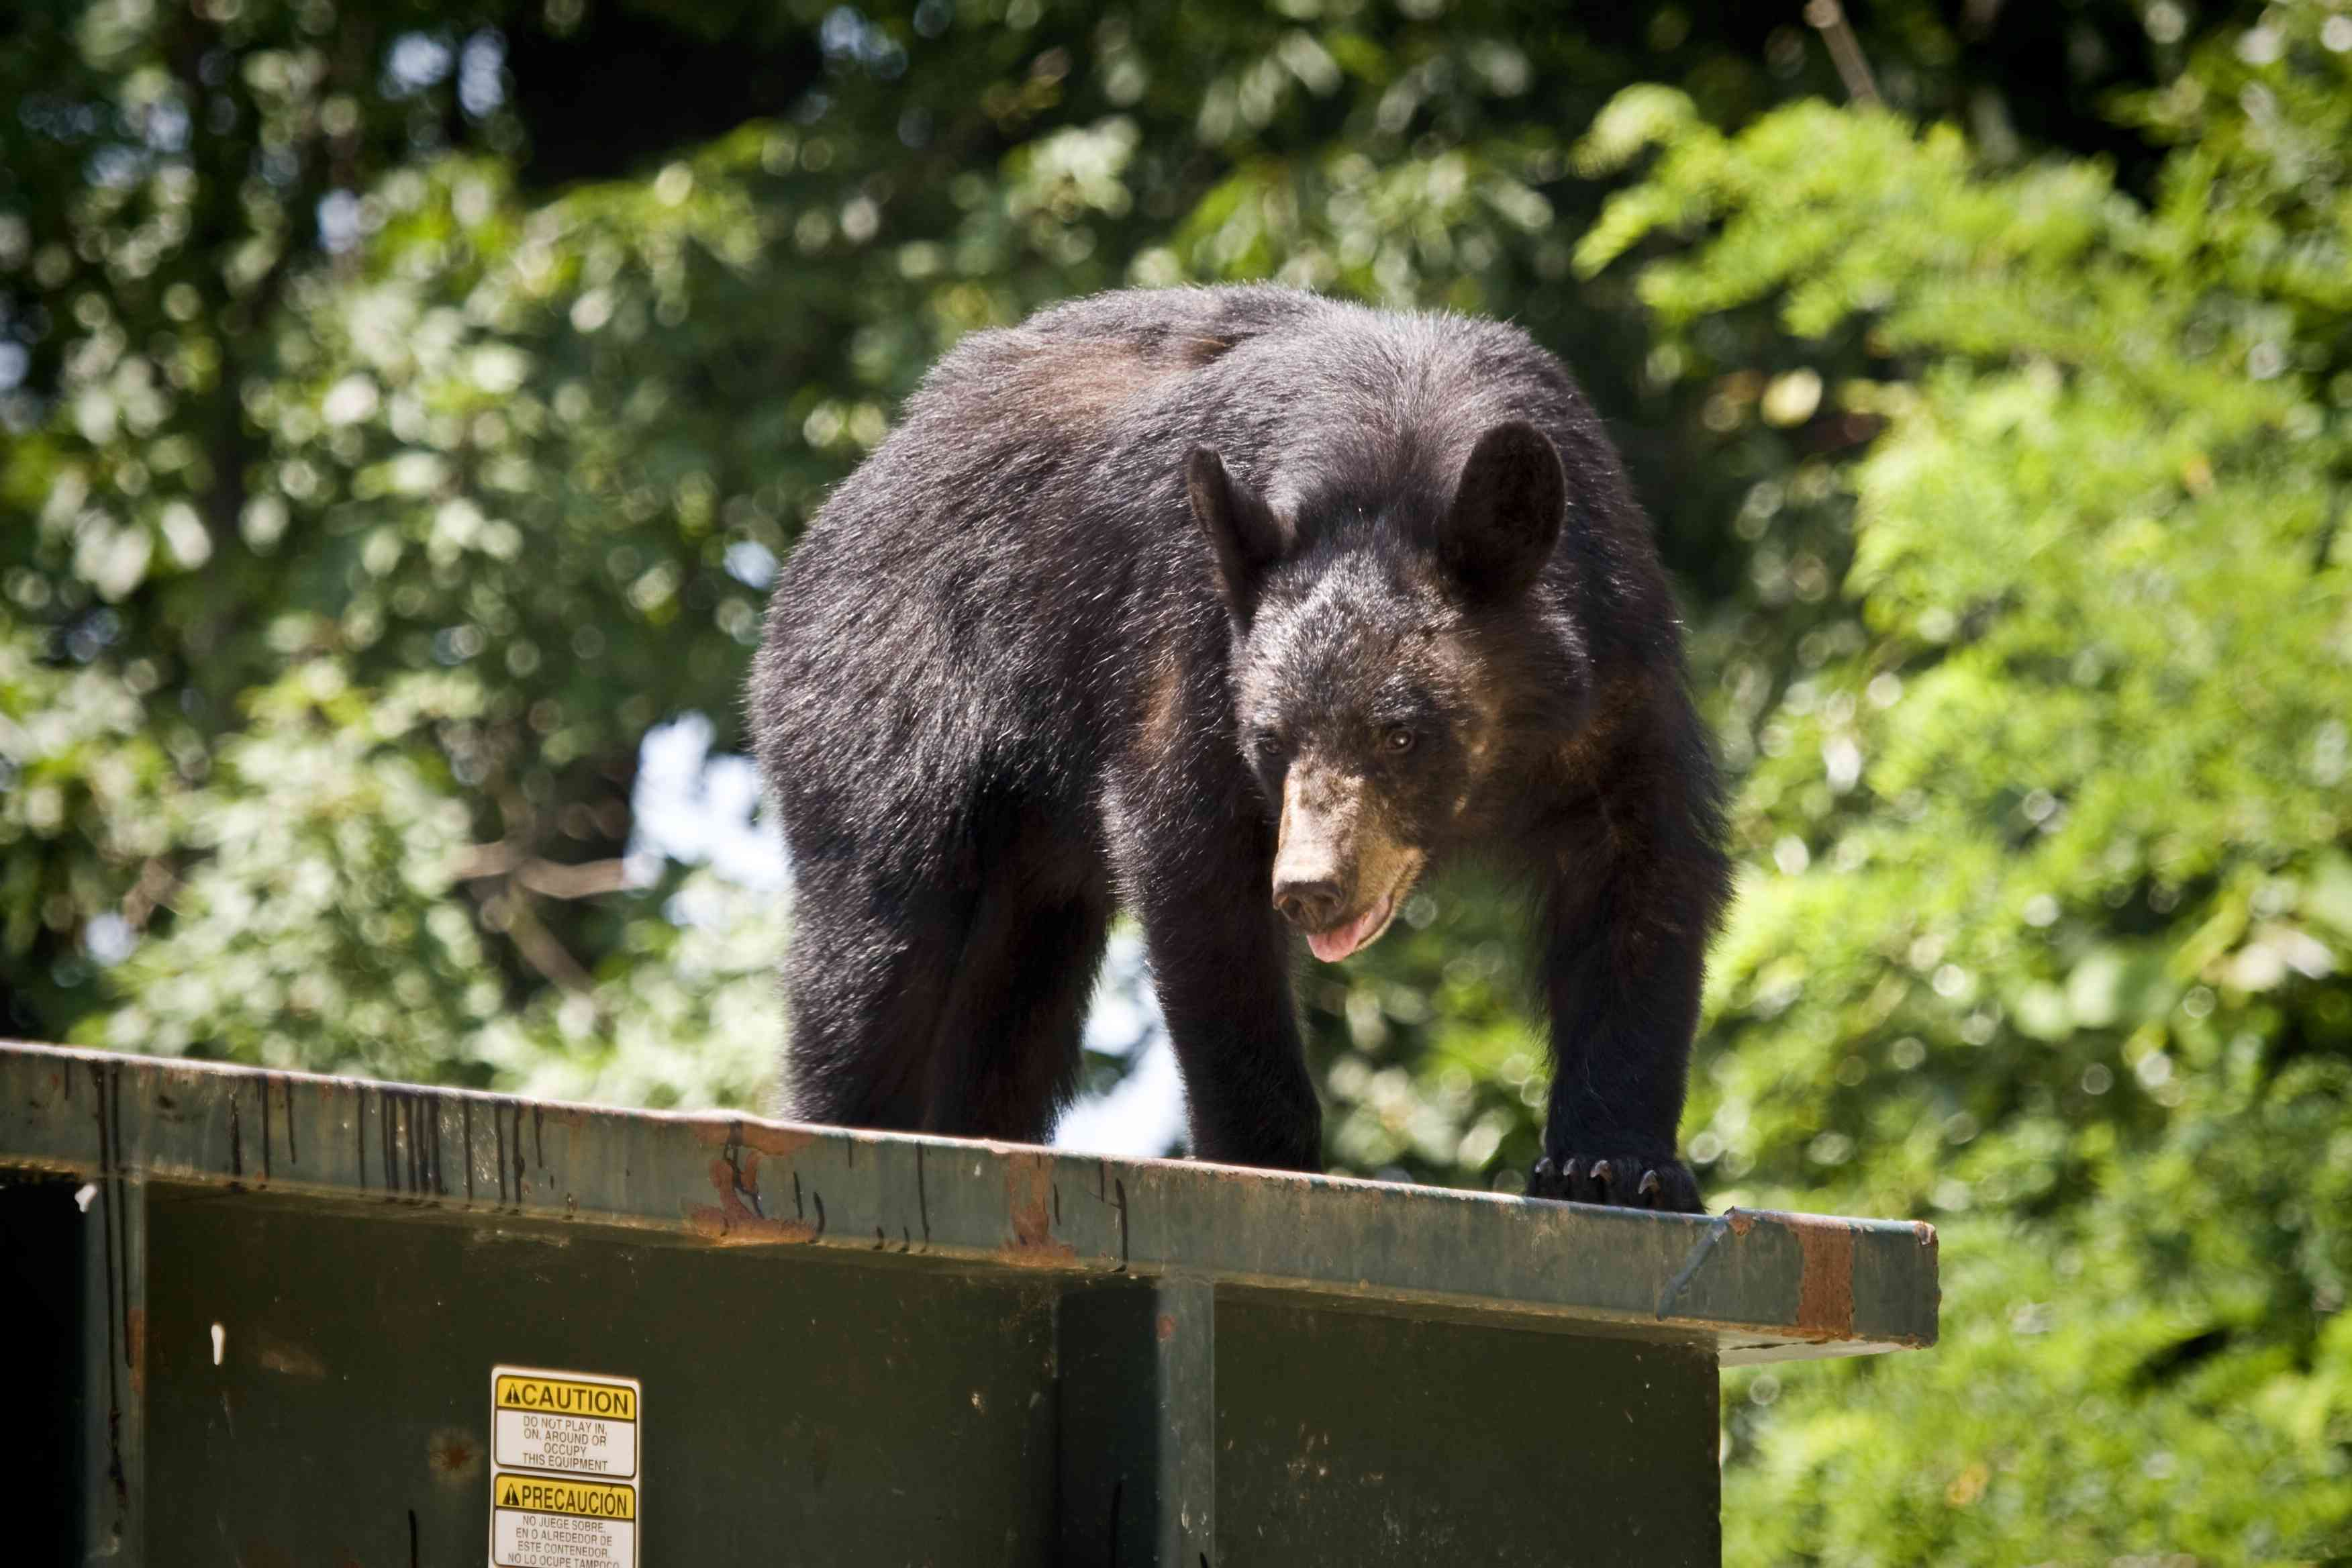 A young black bear scavenging for food on a dumpster